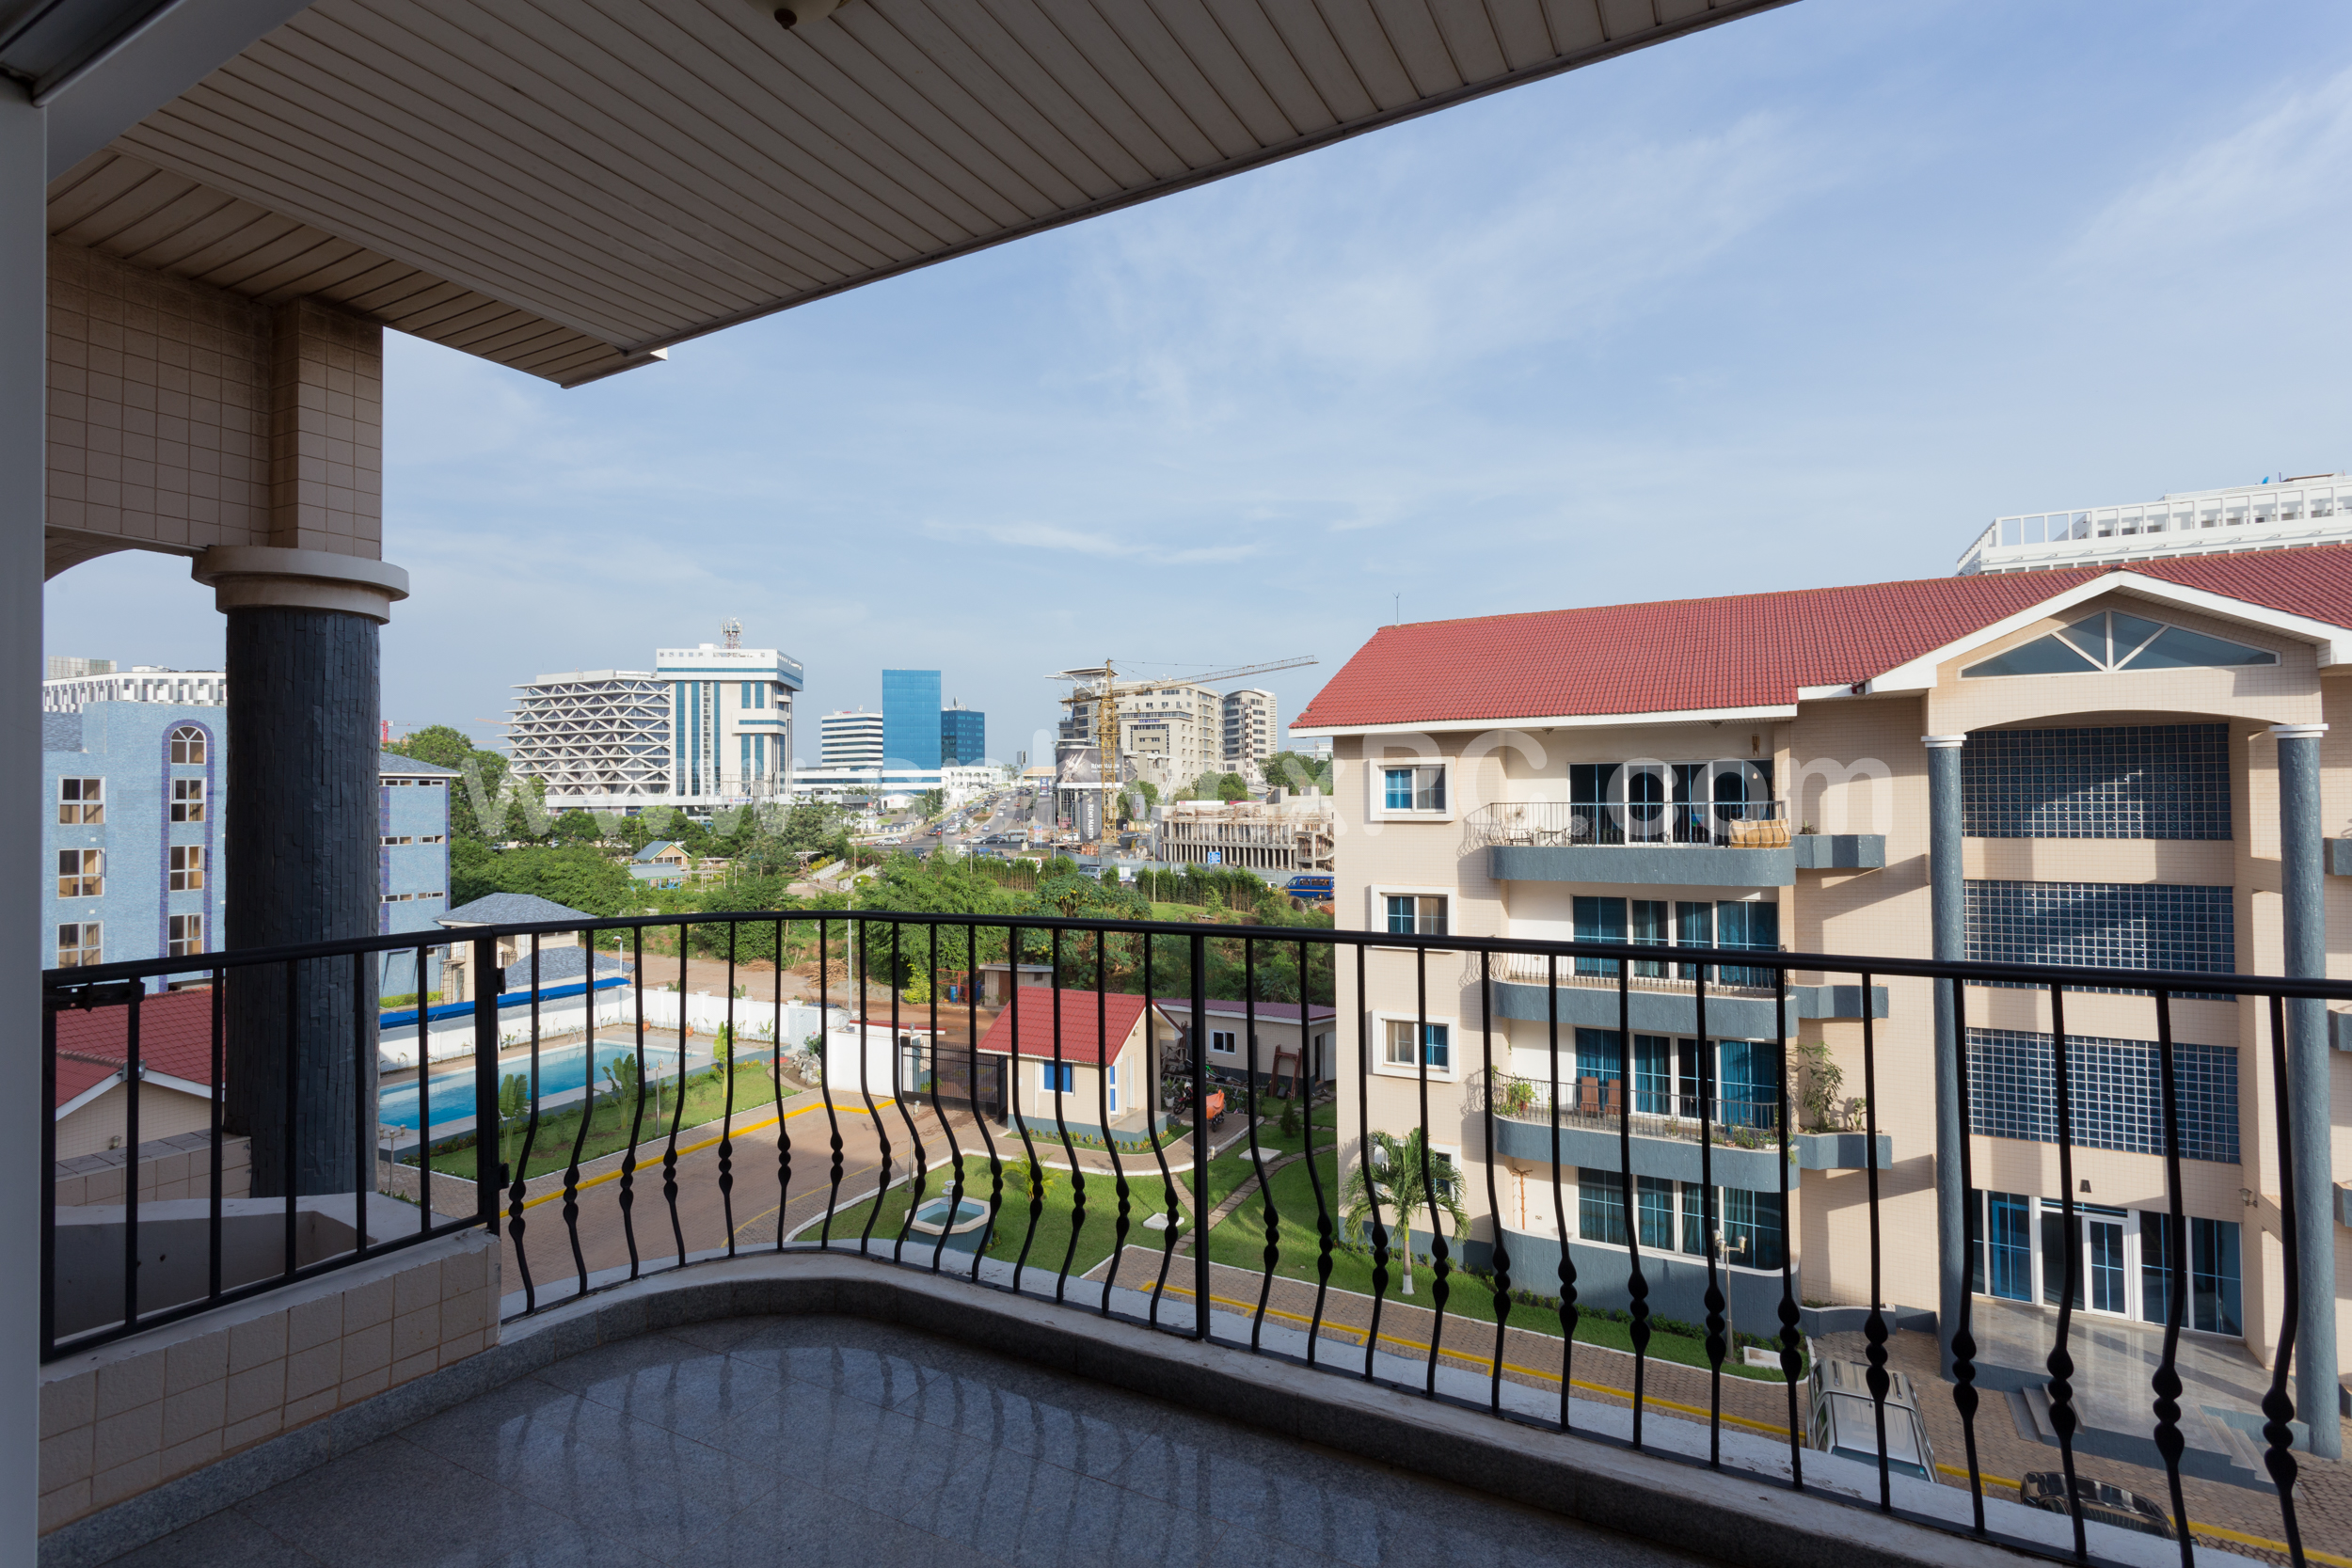 earls_court_accra_ghana_apartments_flats_for_sale_rent_to_let_real_estate_sphynxpc_vantage_location_expat_house_airport_residential_area_cantoments_ridge_hills_hyatt_17-16